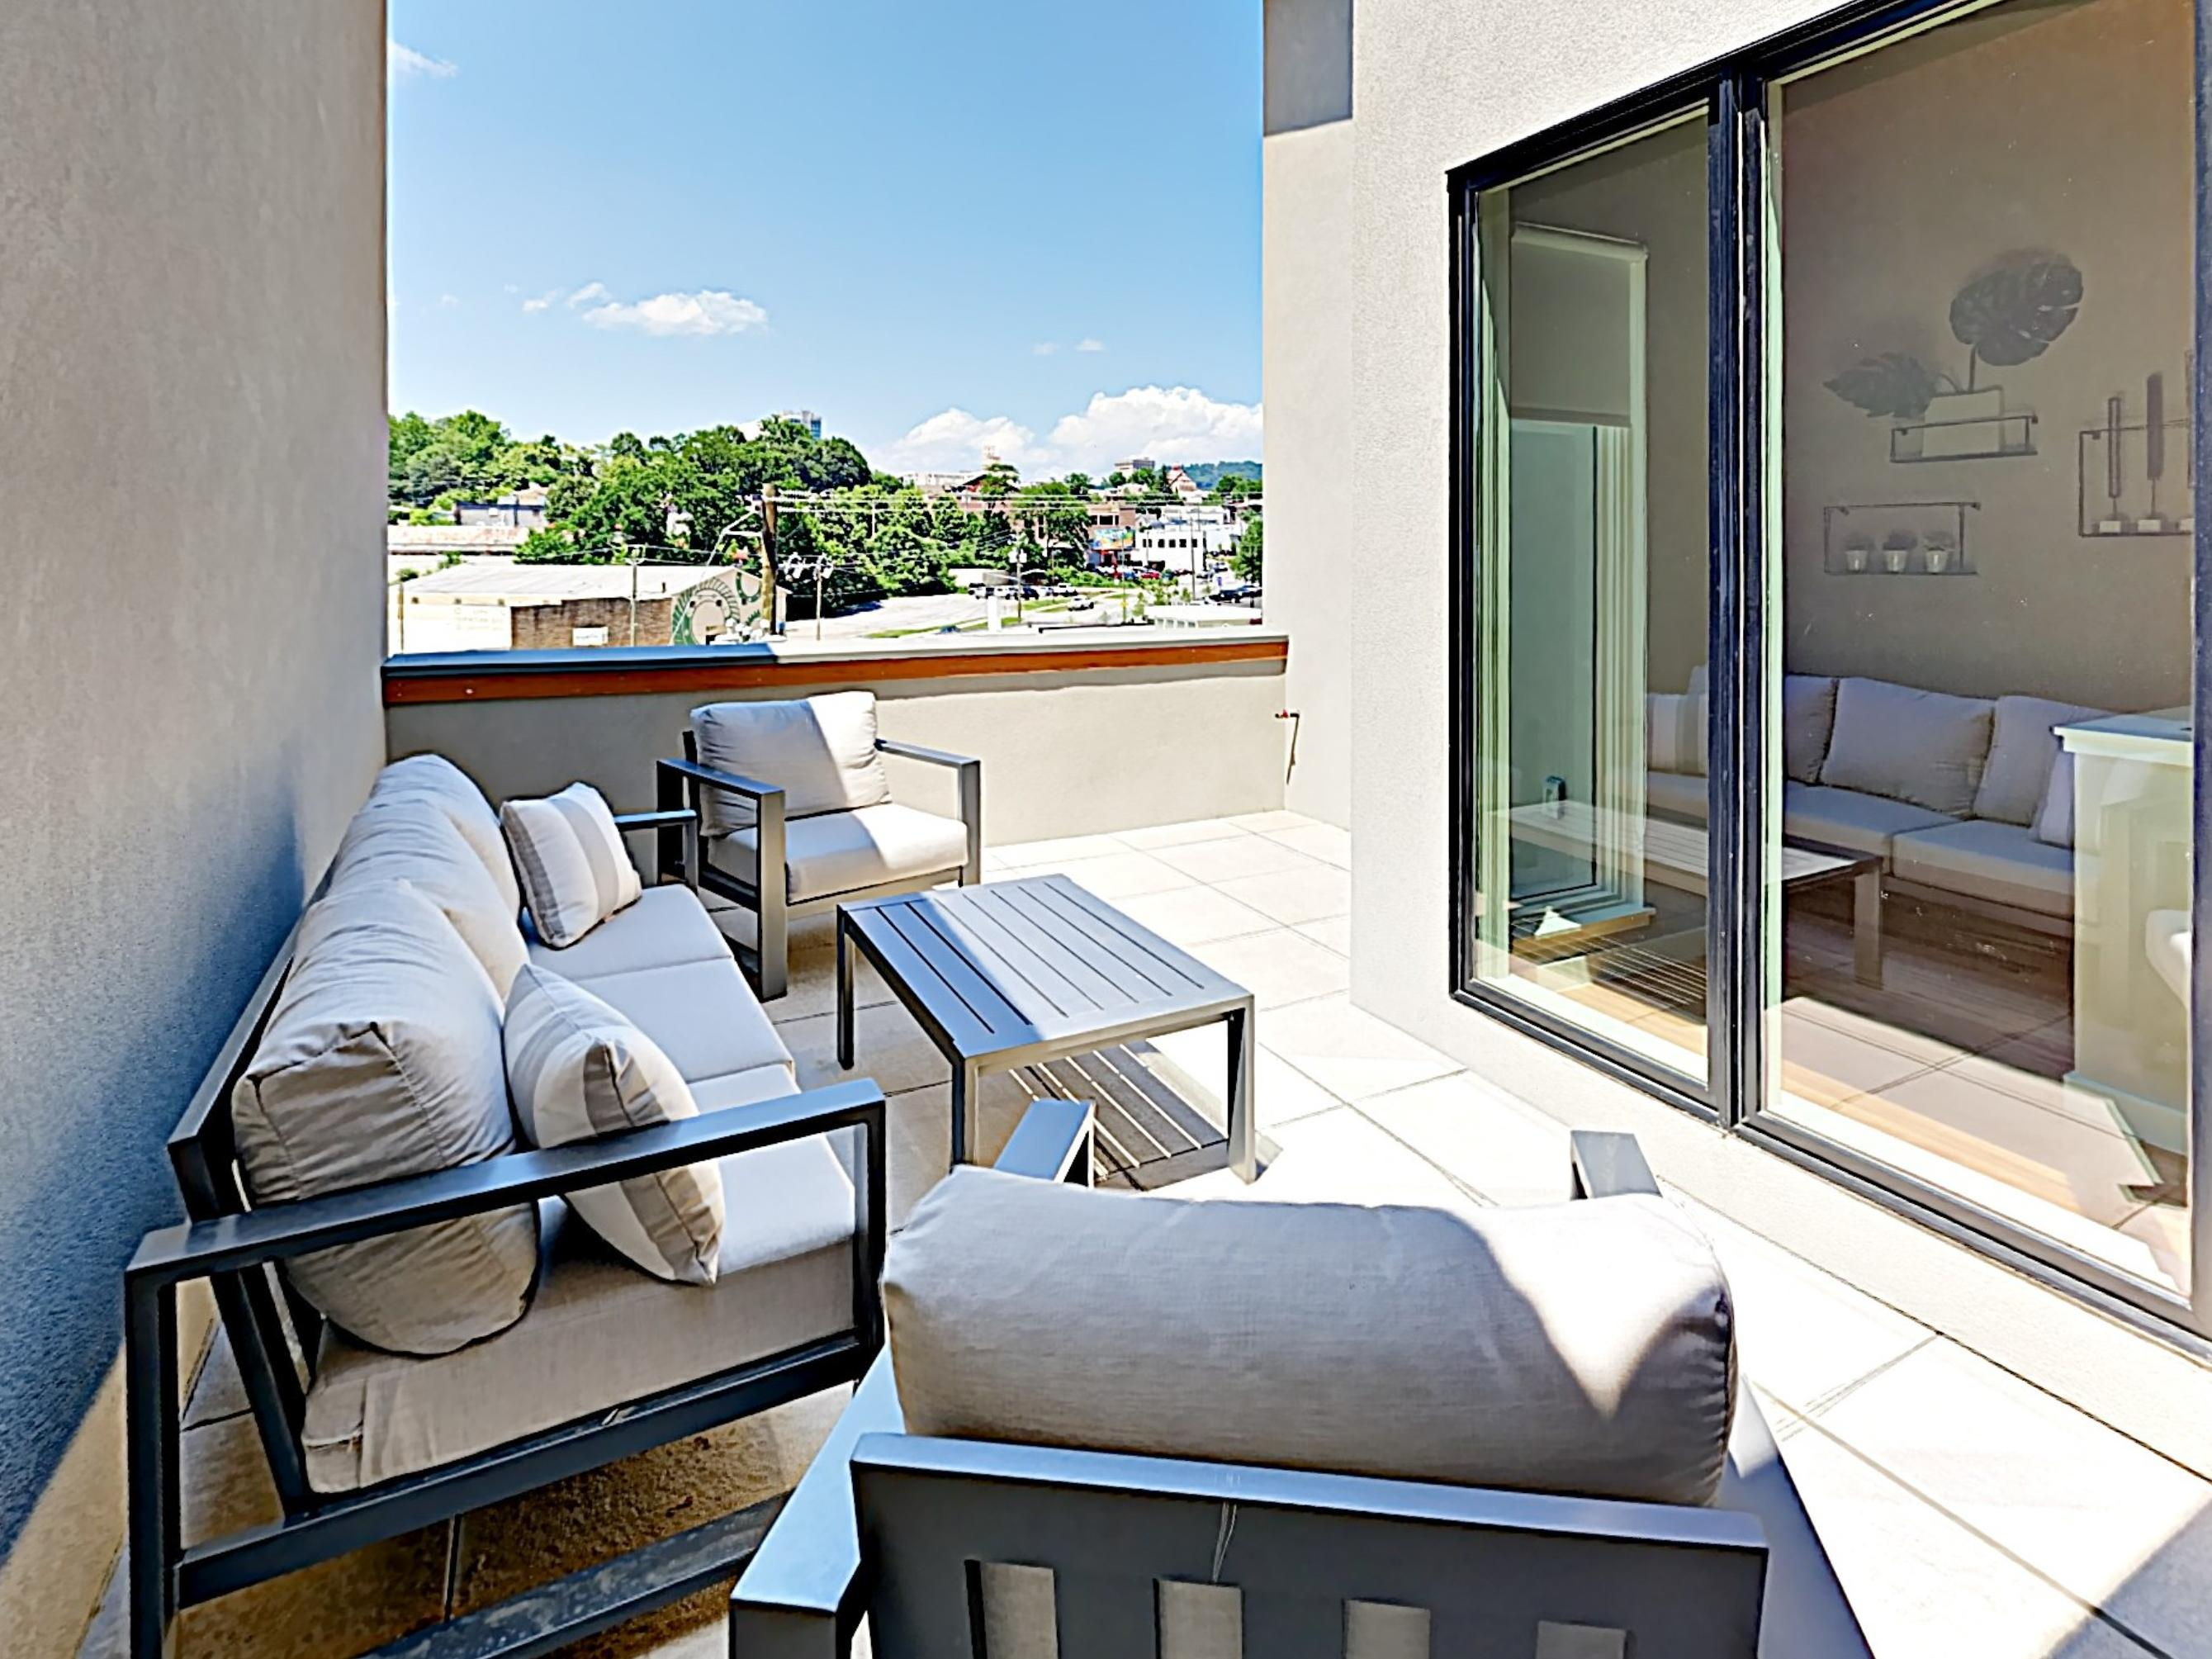 Enjoy views of the city from the top floor balcony.